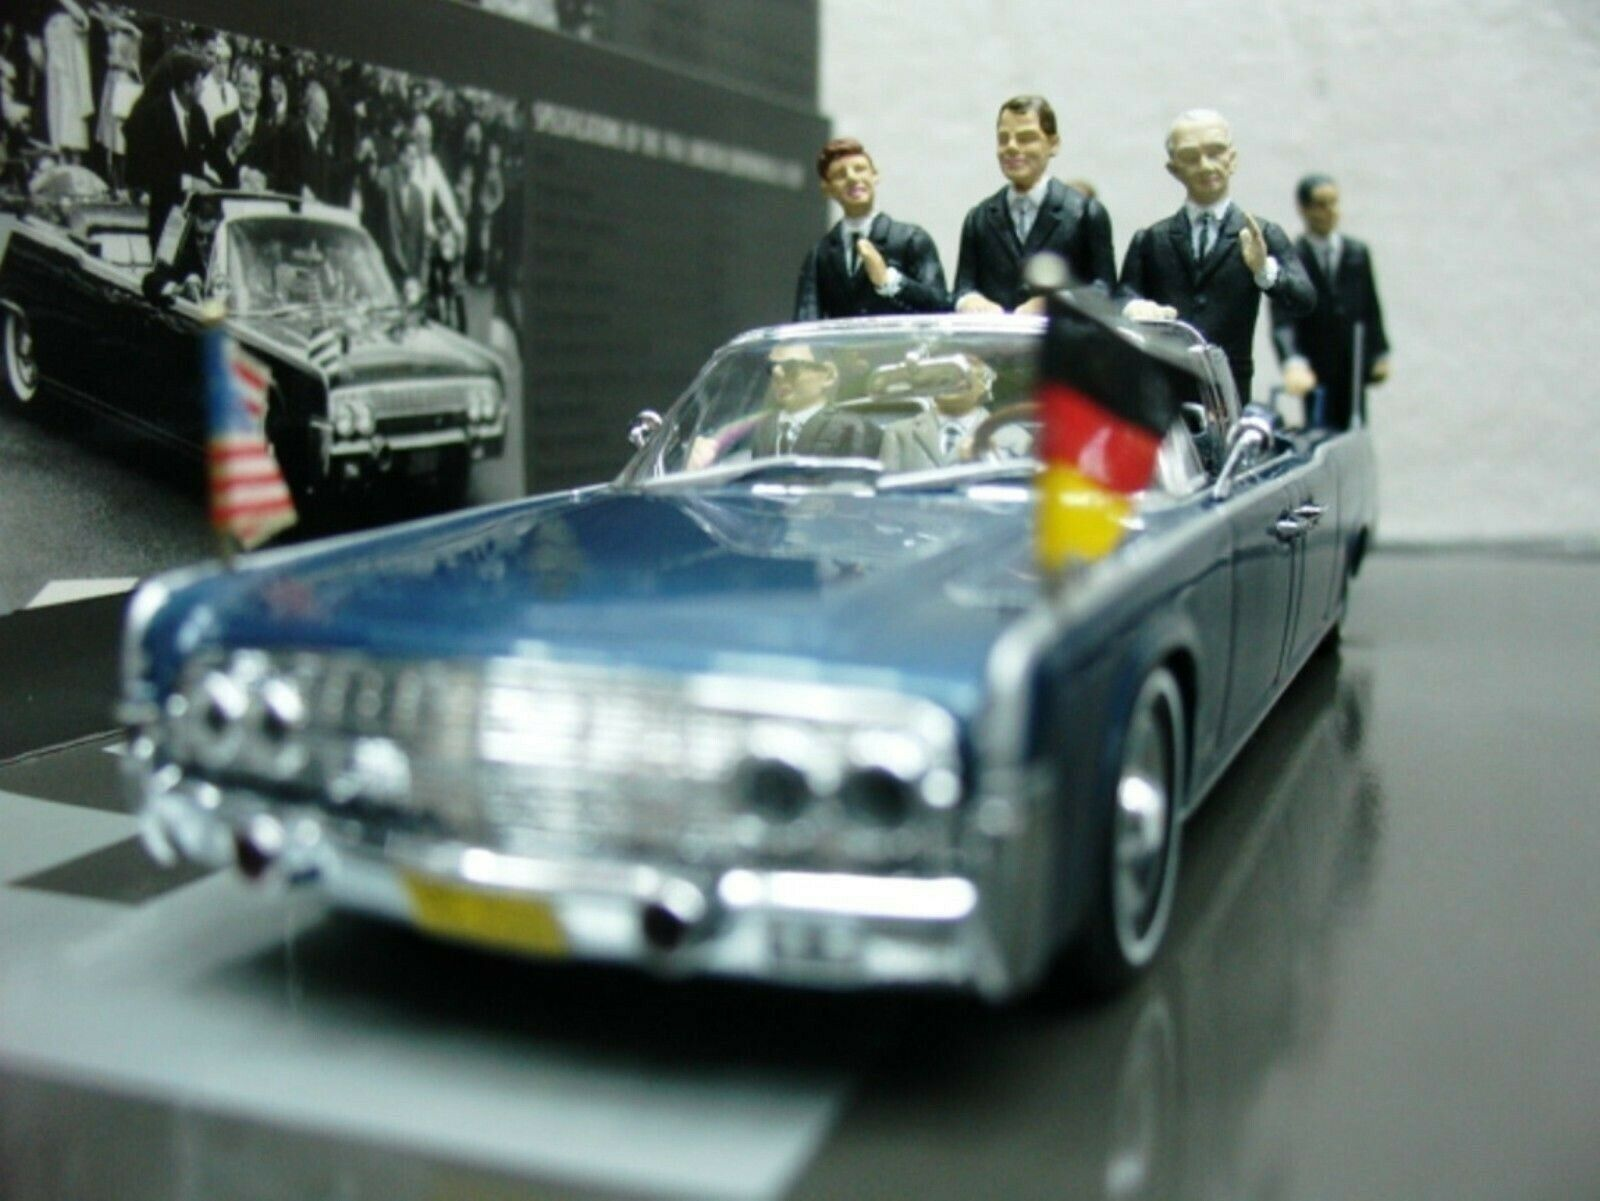 WOW EXTREMELY RARE Lincoln Continental X-100 Kennedy Berlin 1963 1 43 Minichamps